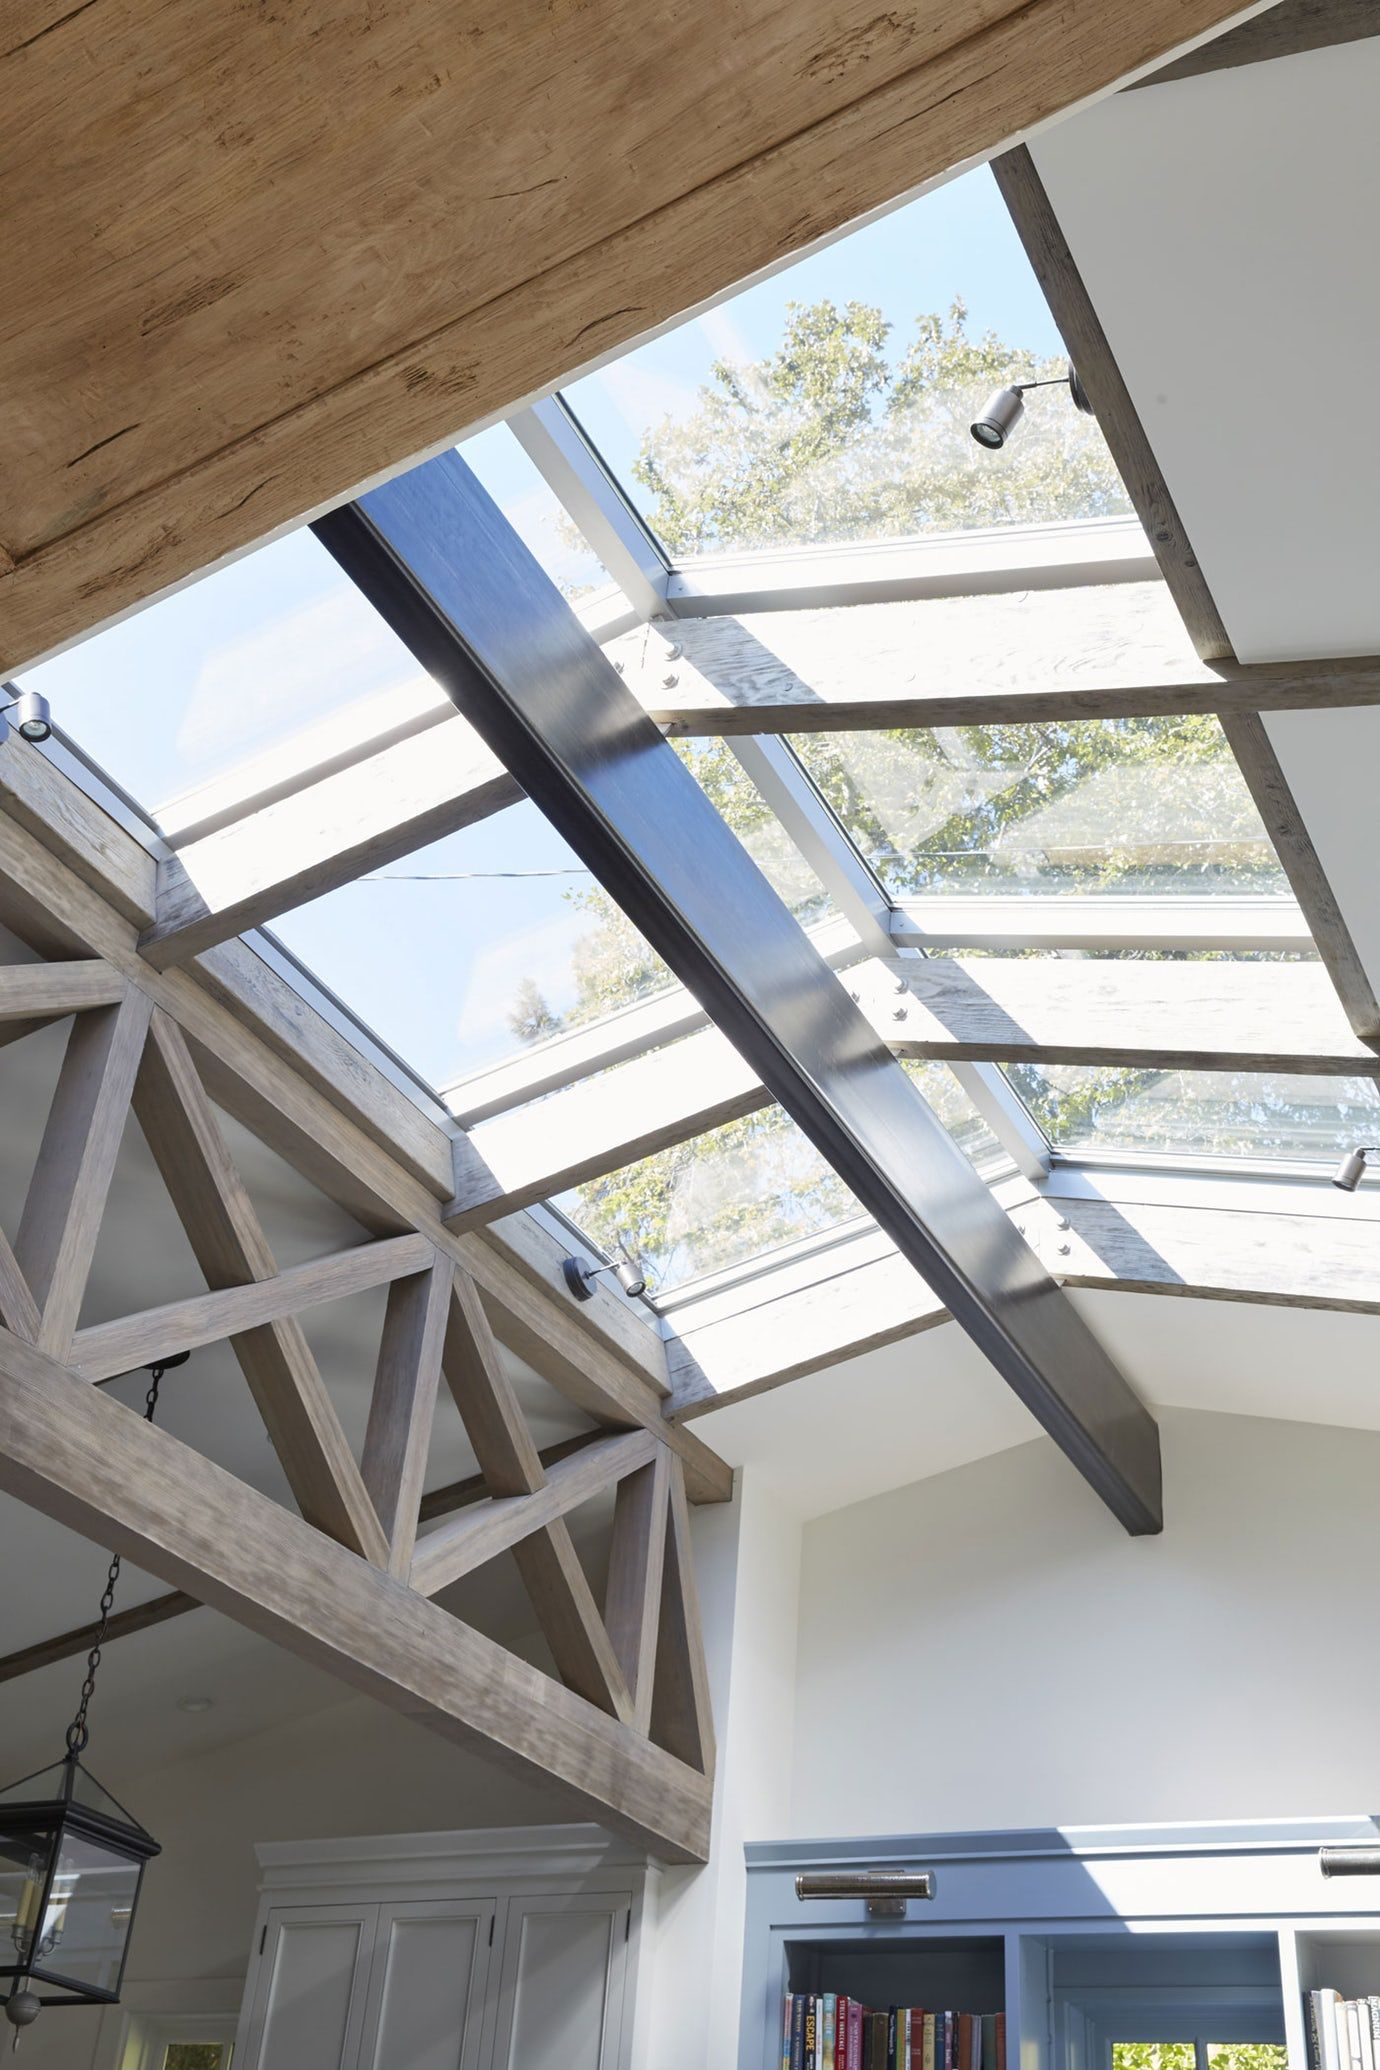 Skylight Detail In A Ranch House Renovation Architectural Detail Design Detail Contemporary Amer Skylight Architecture Skylight Design Architecture Details